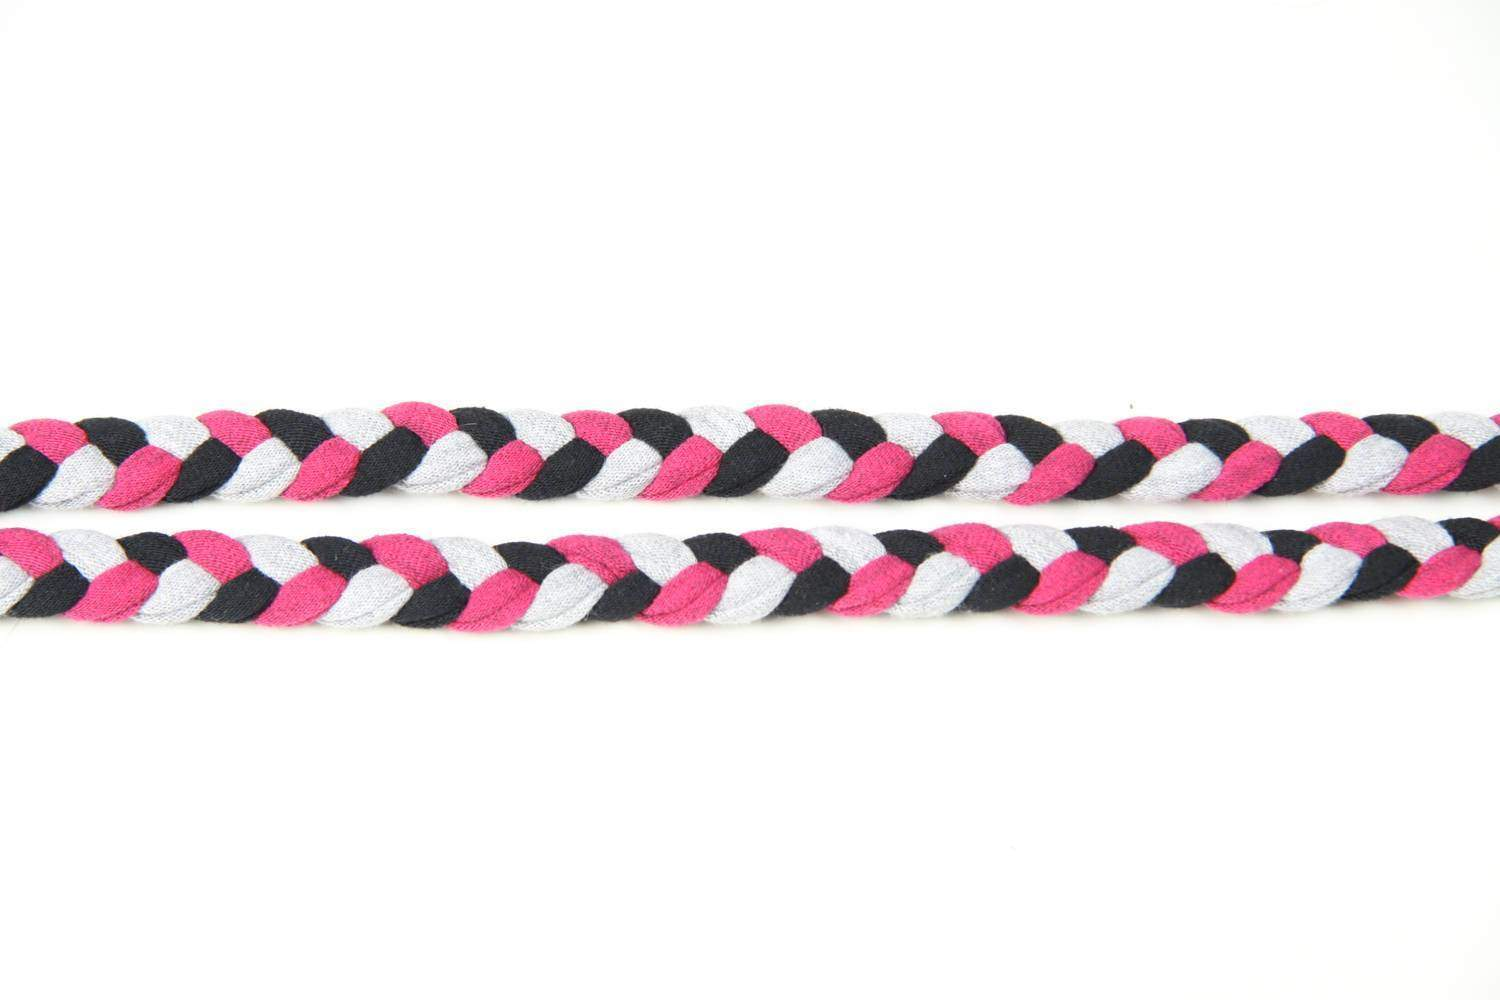 mens bracelet-Pink Grey Black Braided Bracelet-Necklush